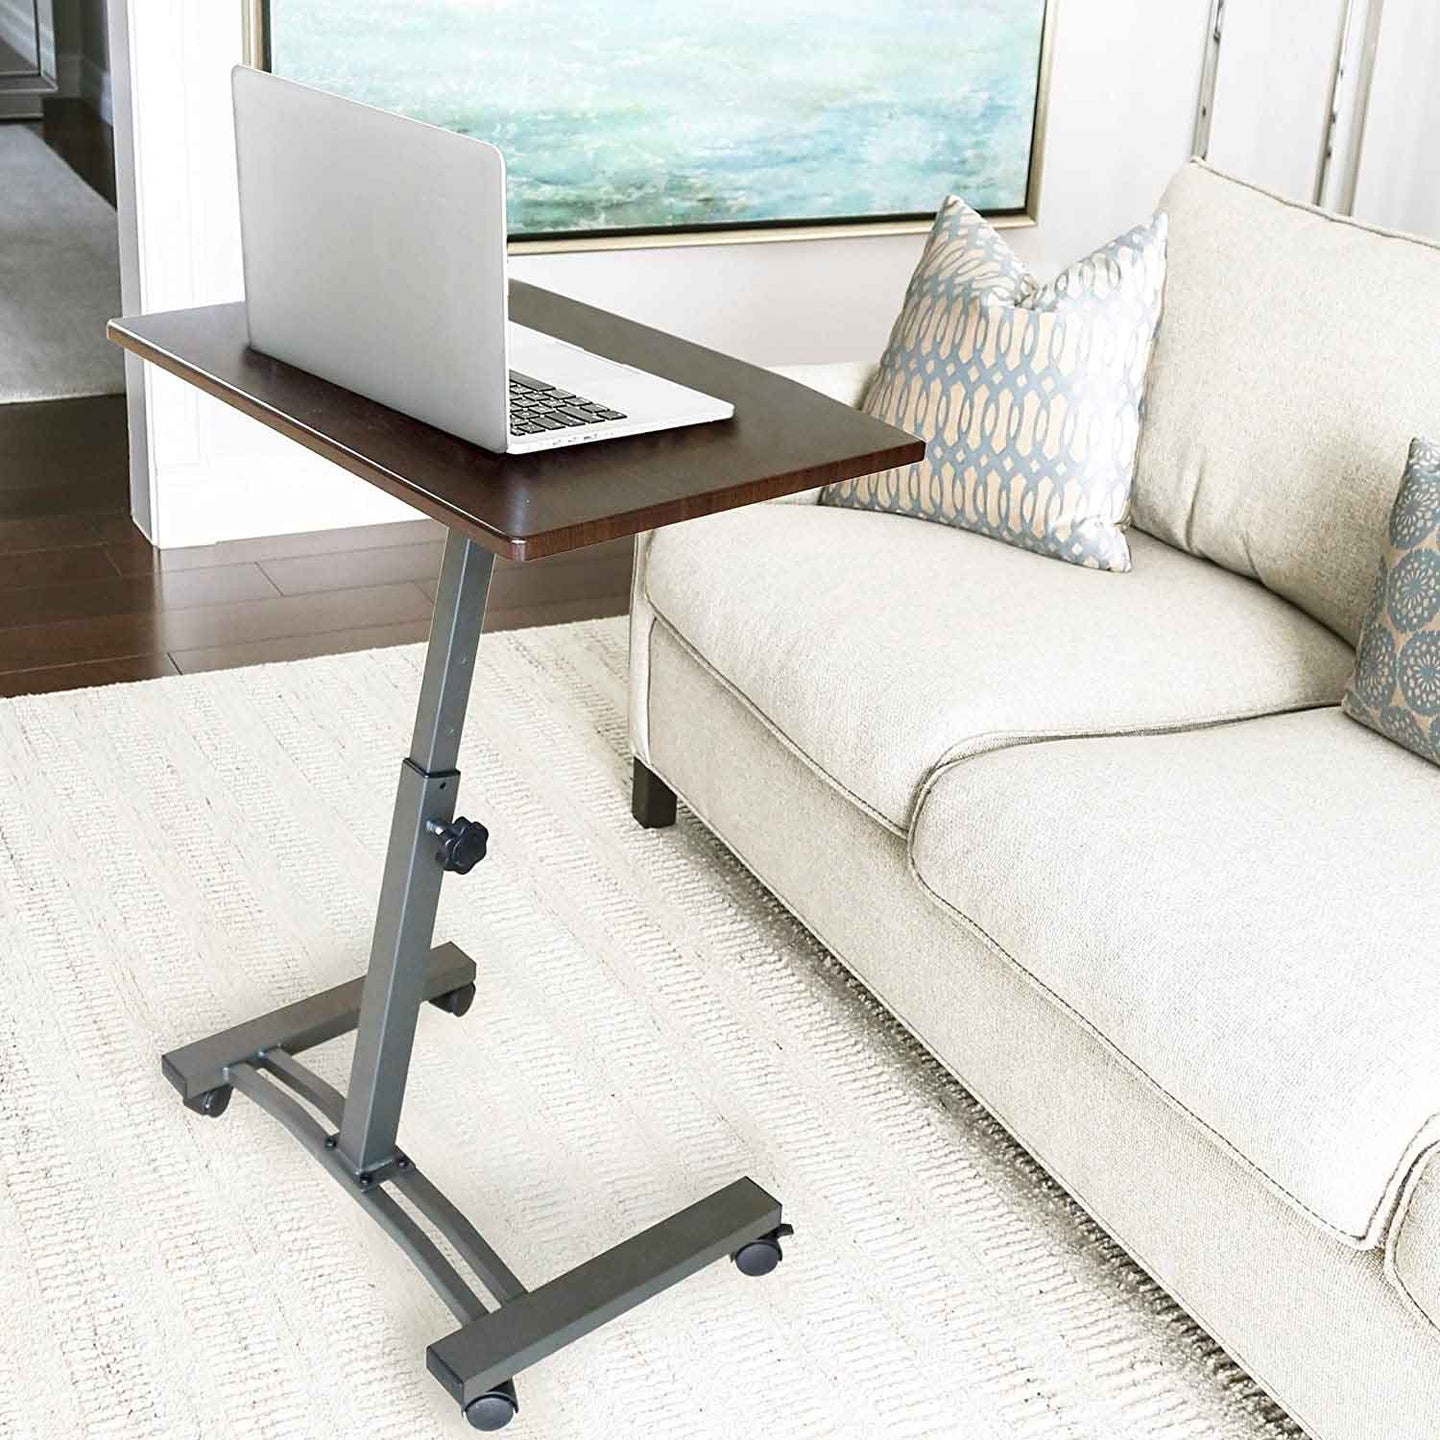 TV tray table in the living room